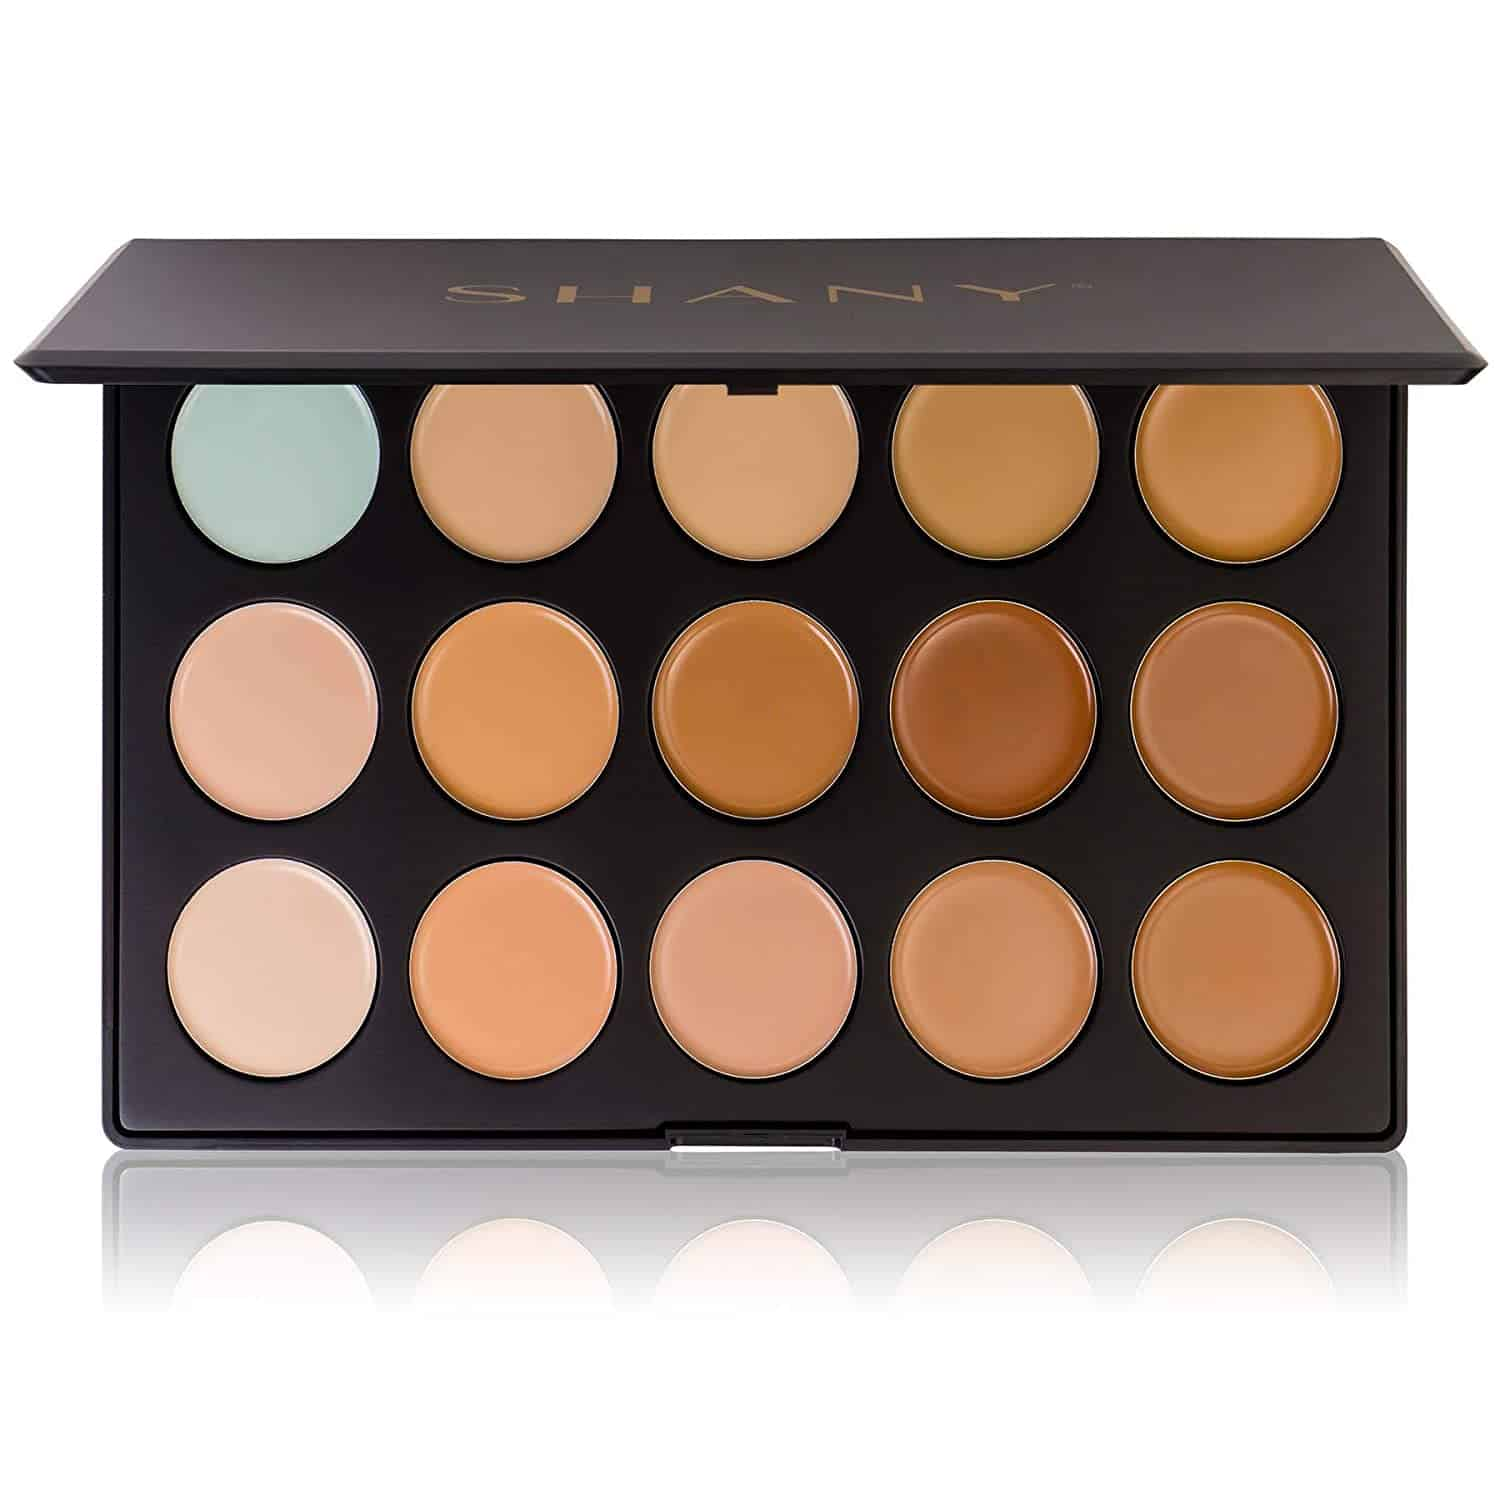 The Best Foundation Palette For Makeup